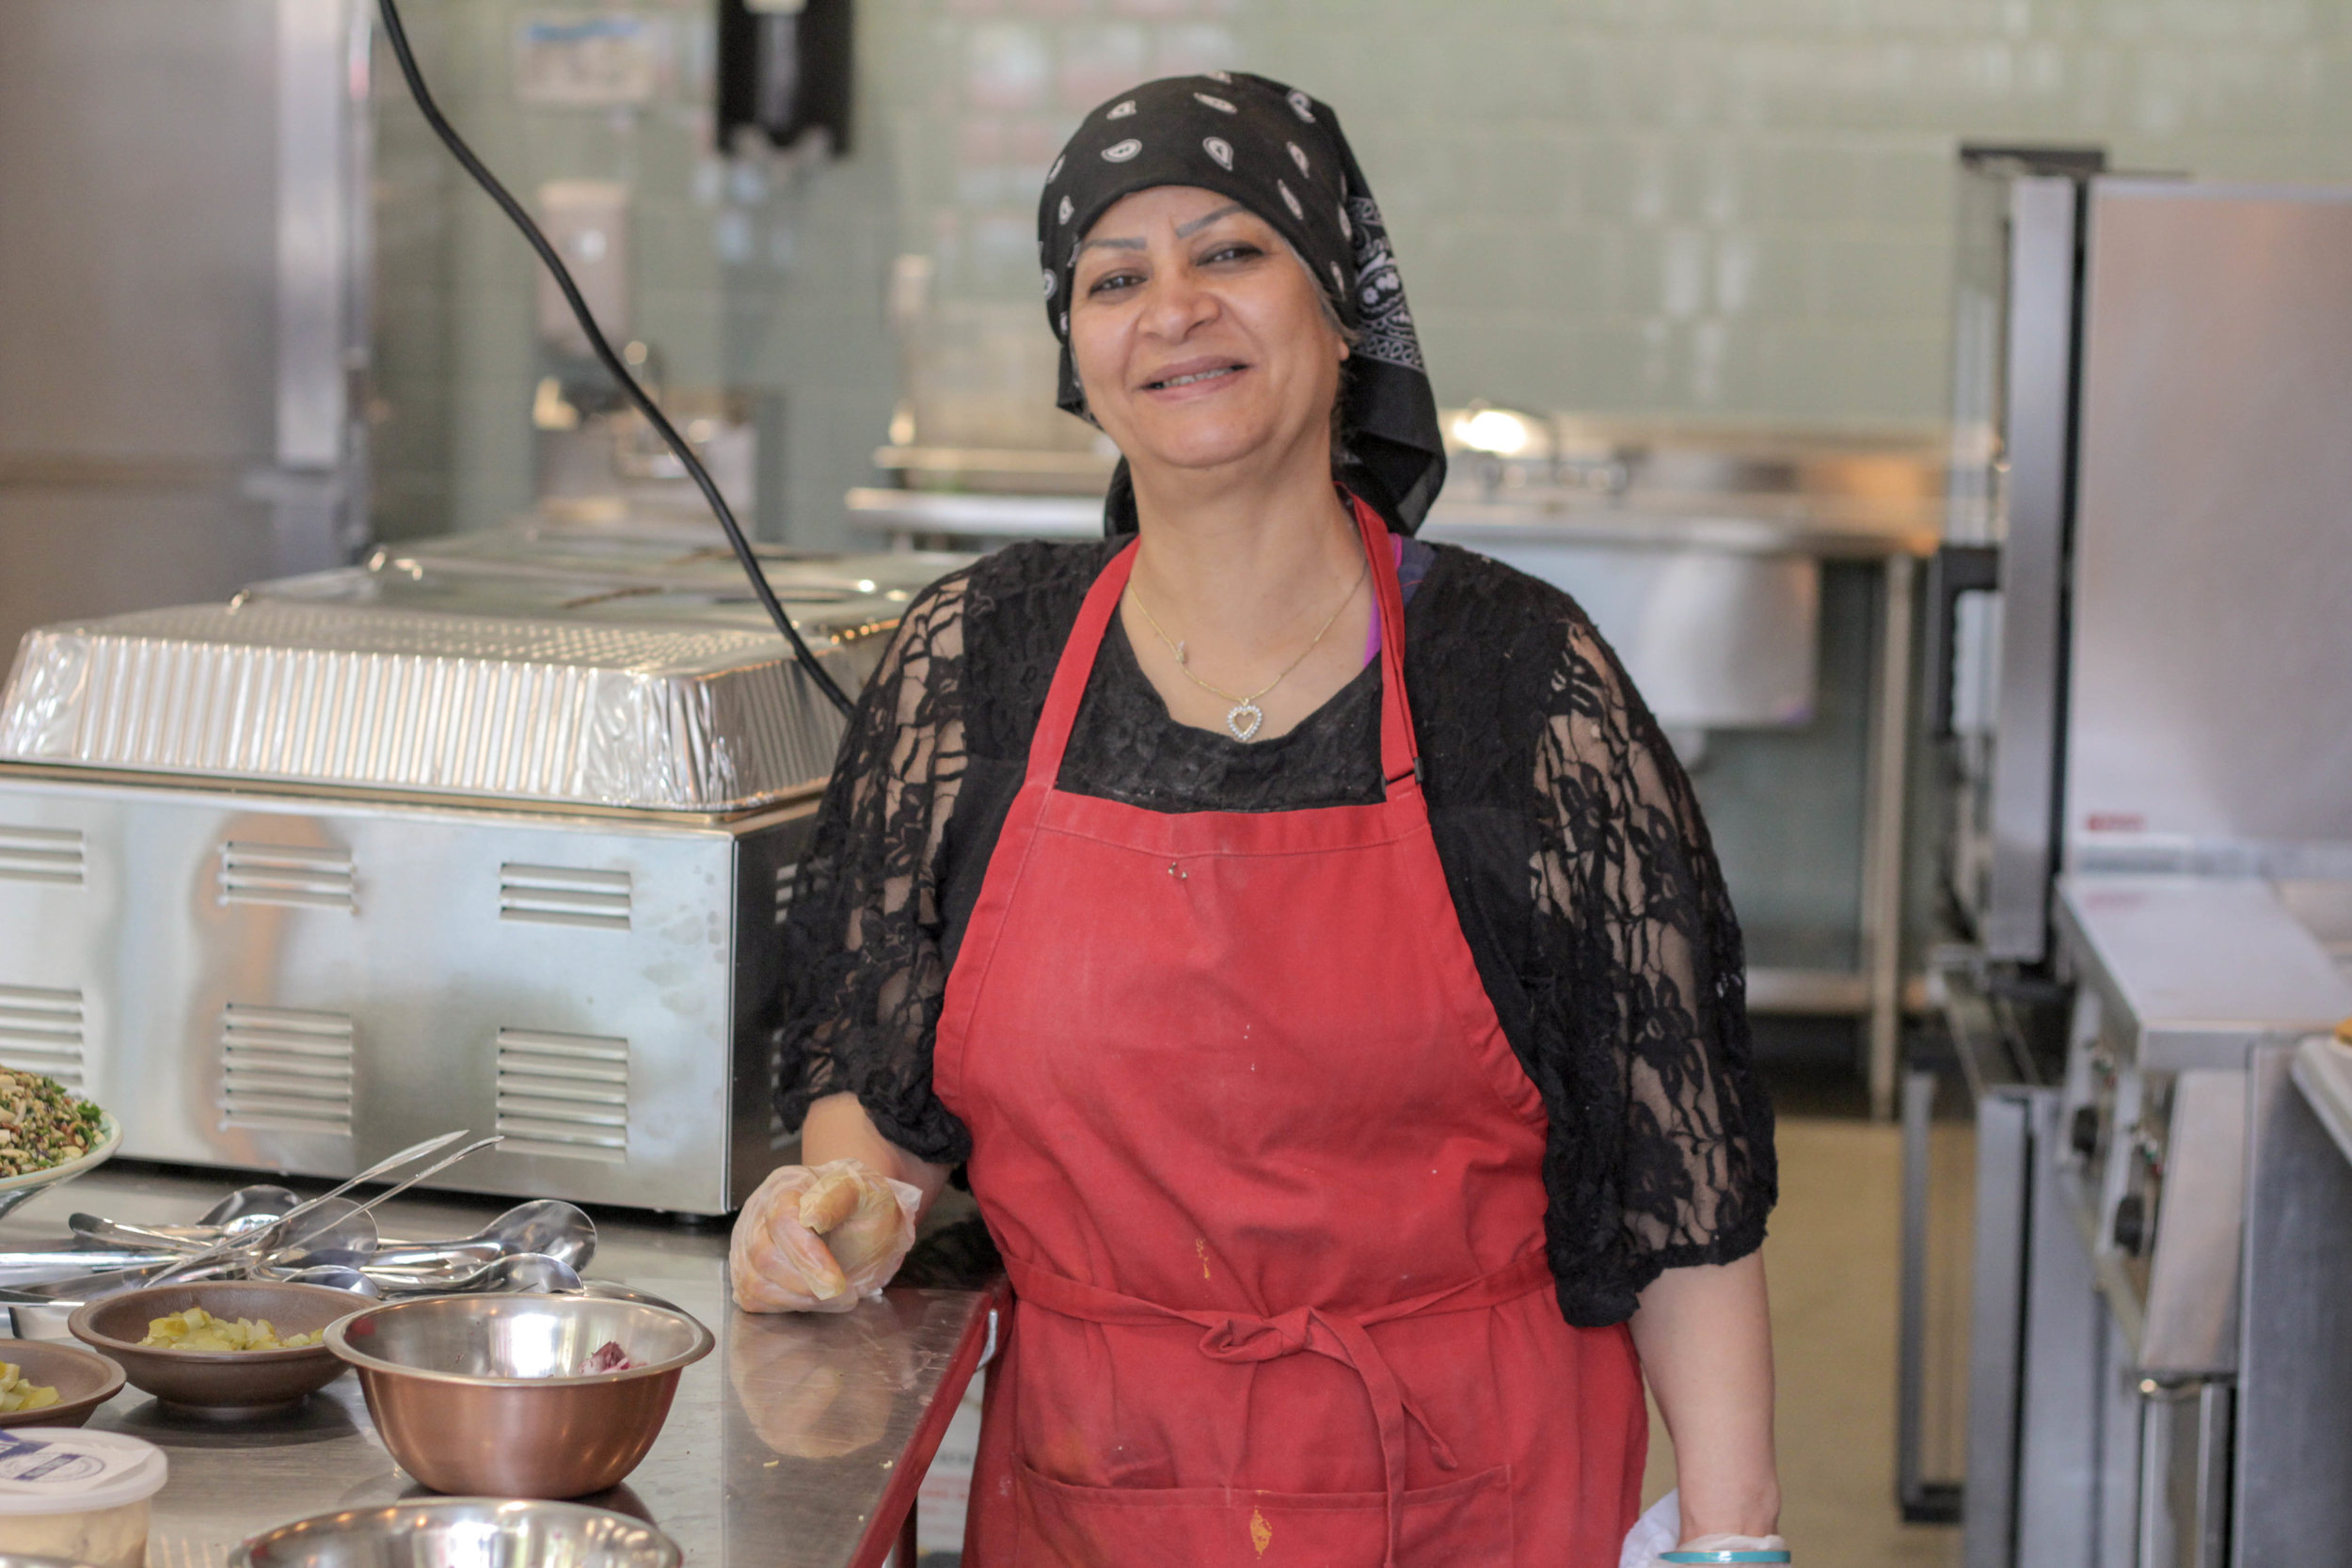 Azzezah Ali, Iraq  Azzezah Ali hails from Baghdad, Iraq, where she worked in education for nearly 25 years. She served as both a mentor and a supervisor, until she fled Iraq in 2015. She came to Cincinnati because of the excellent education services for her special needs son, and started a small business baking Iraqi-style pita bread in a tandoor oven.